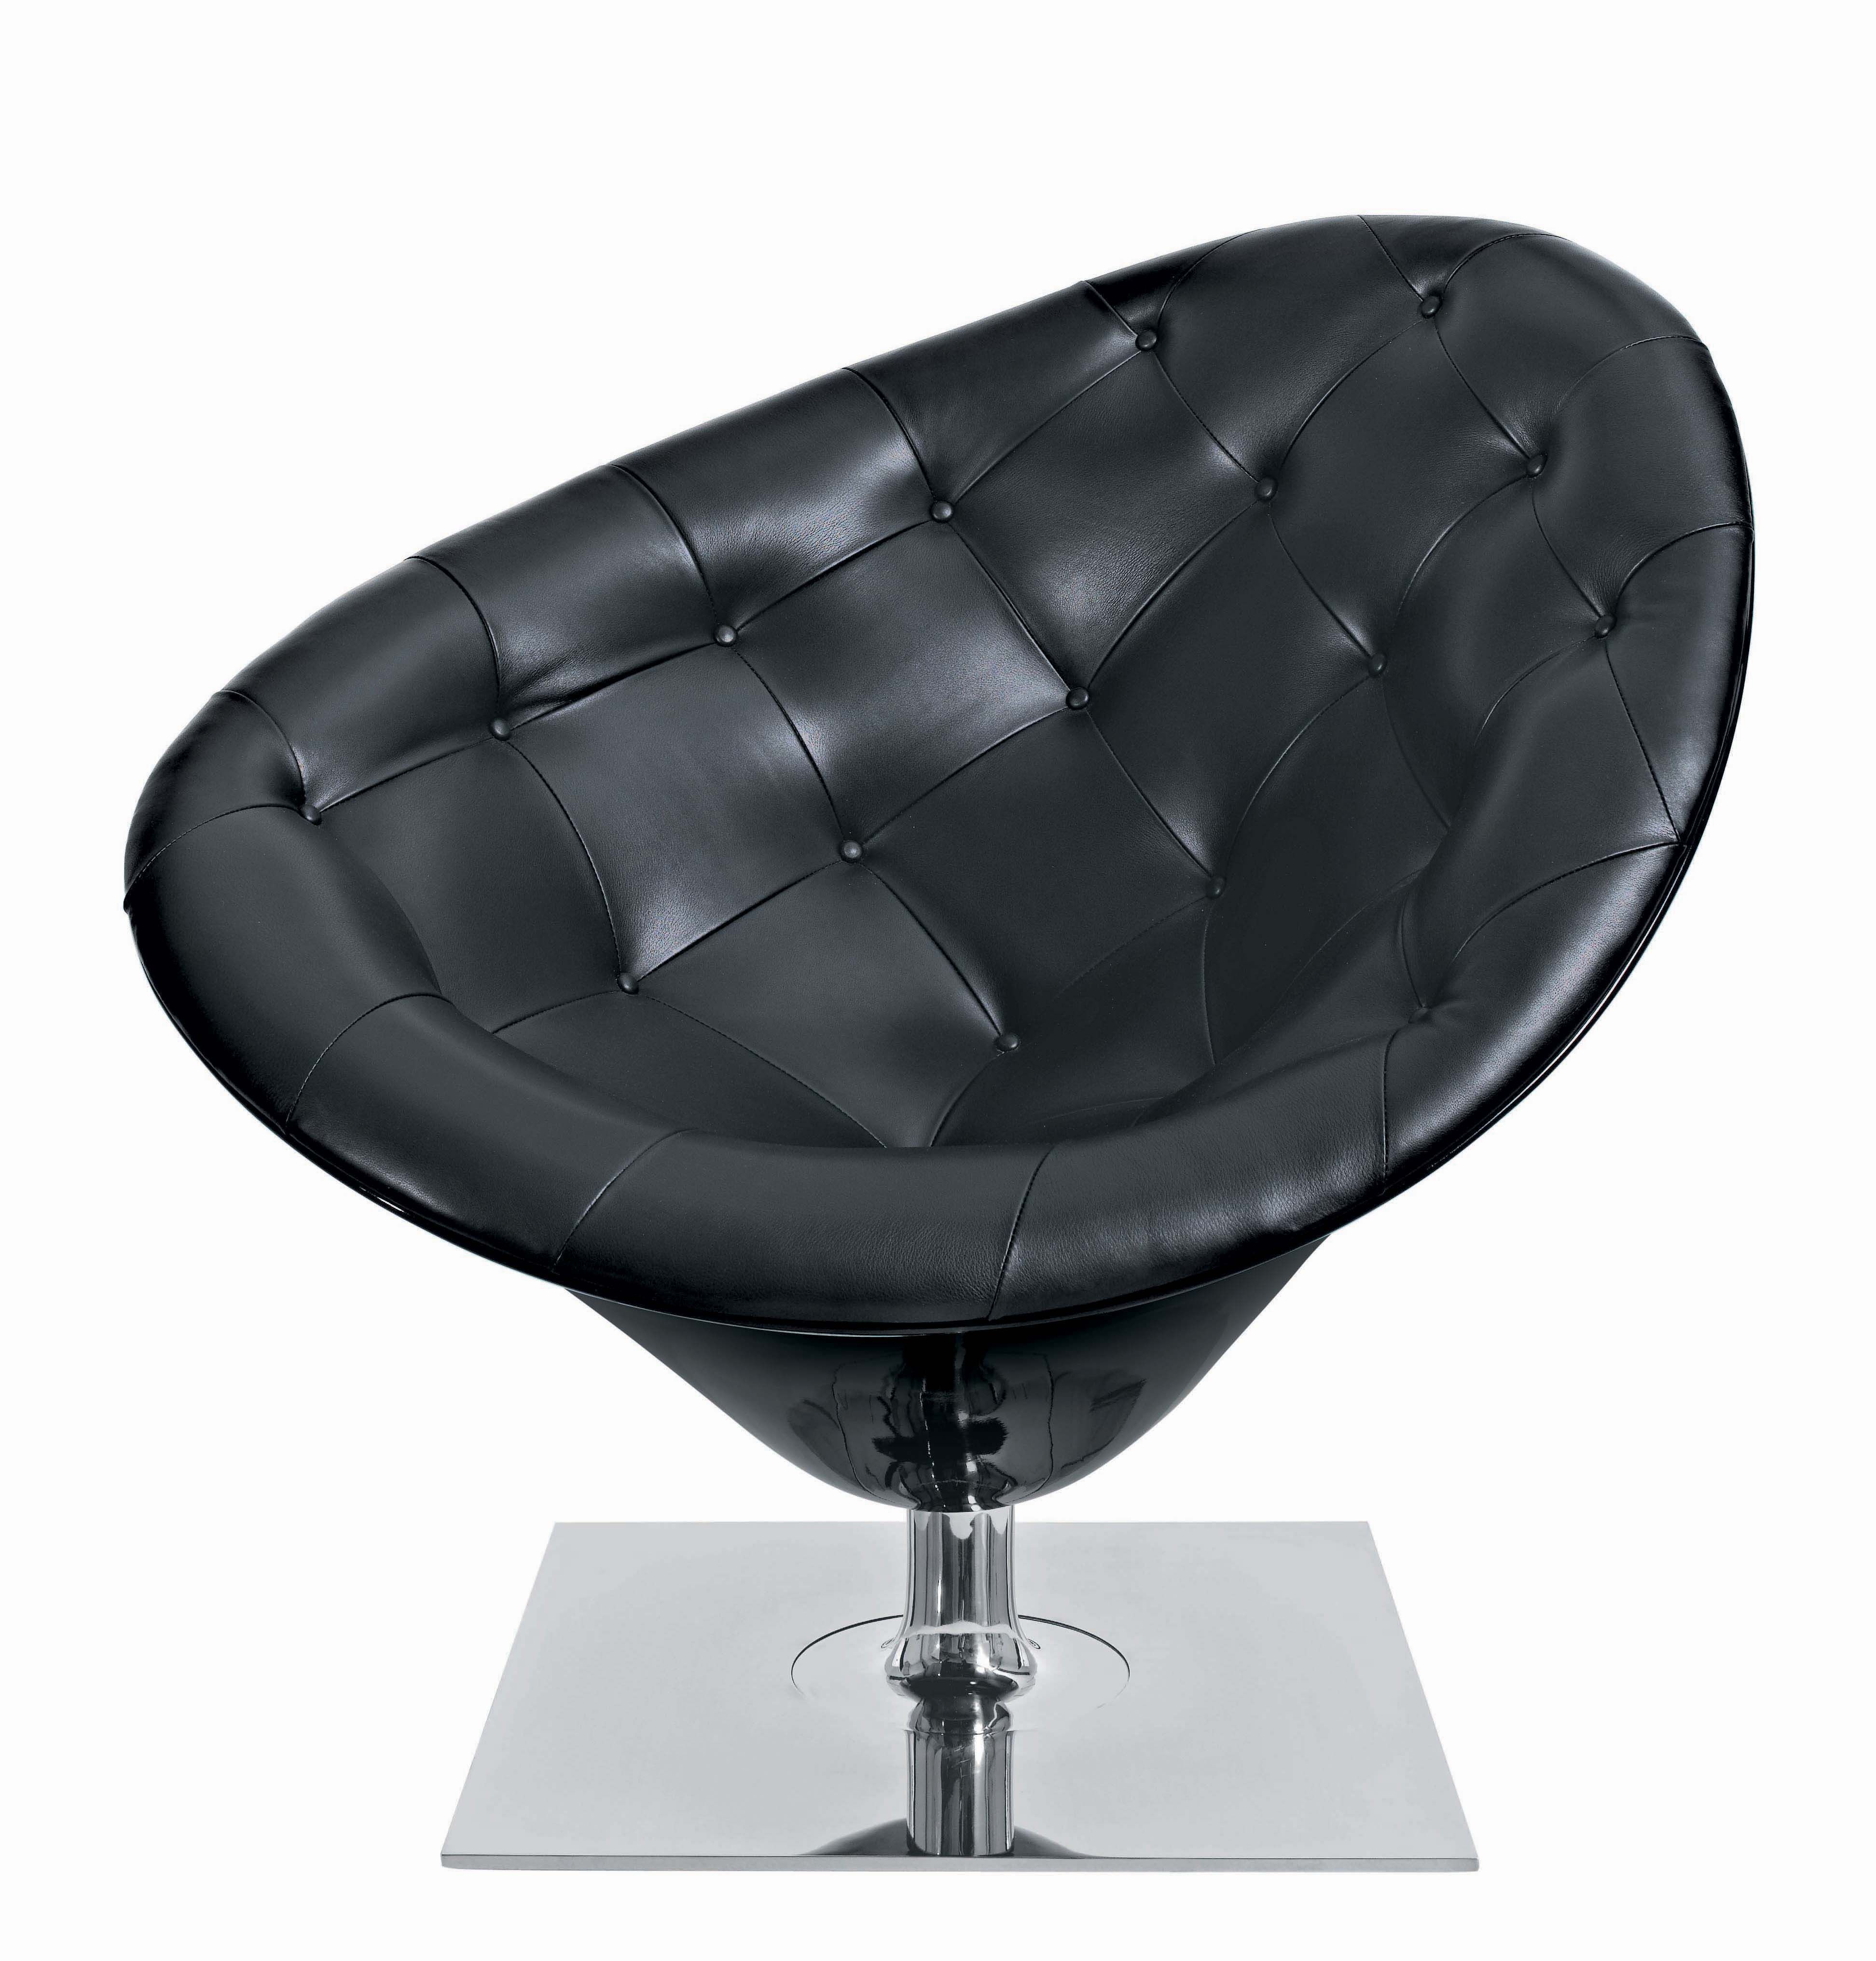 Furniture - Exceptional furniture - MOORe Swivel armchair - Leather version by Driade - Black leather - Fibreglass, Full grain leather, Polished steel